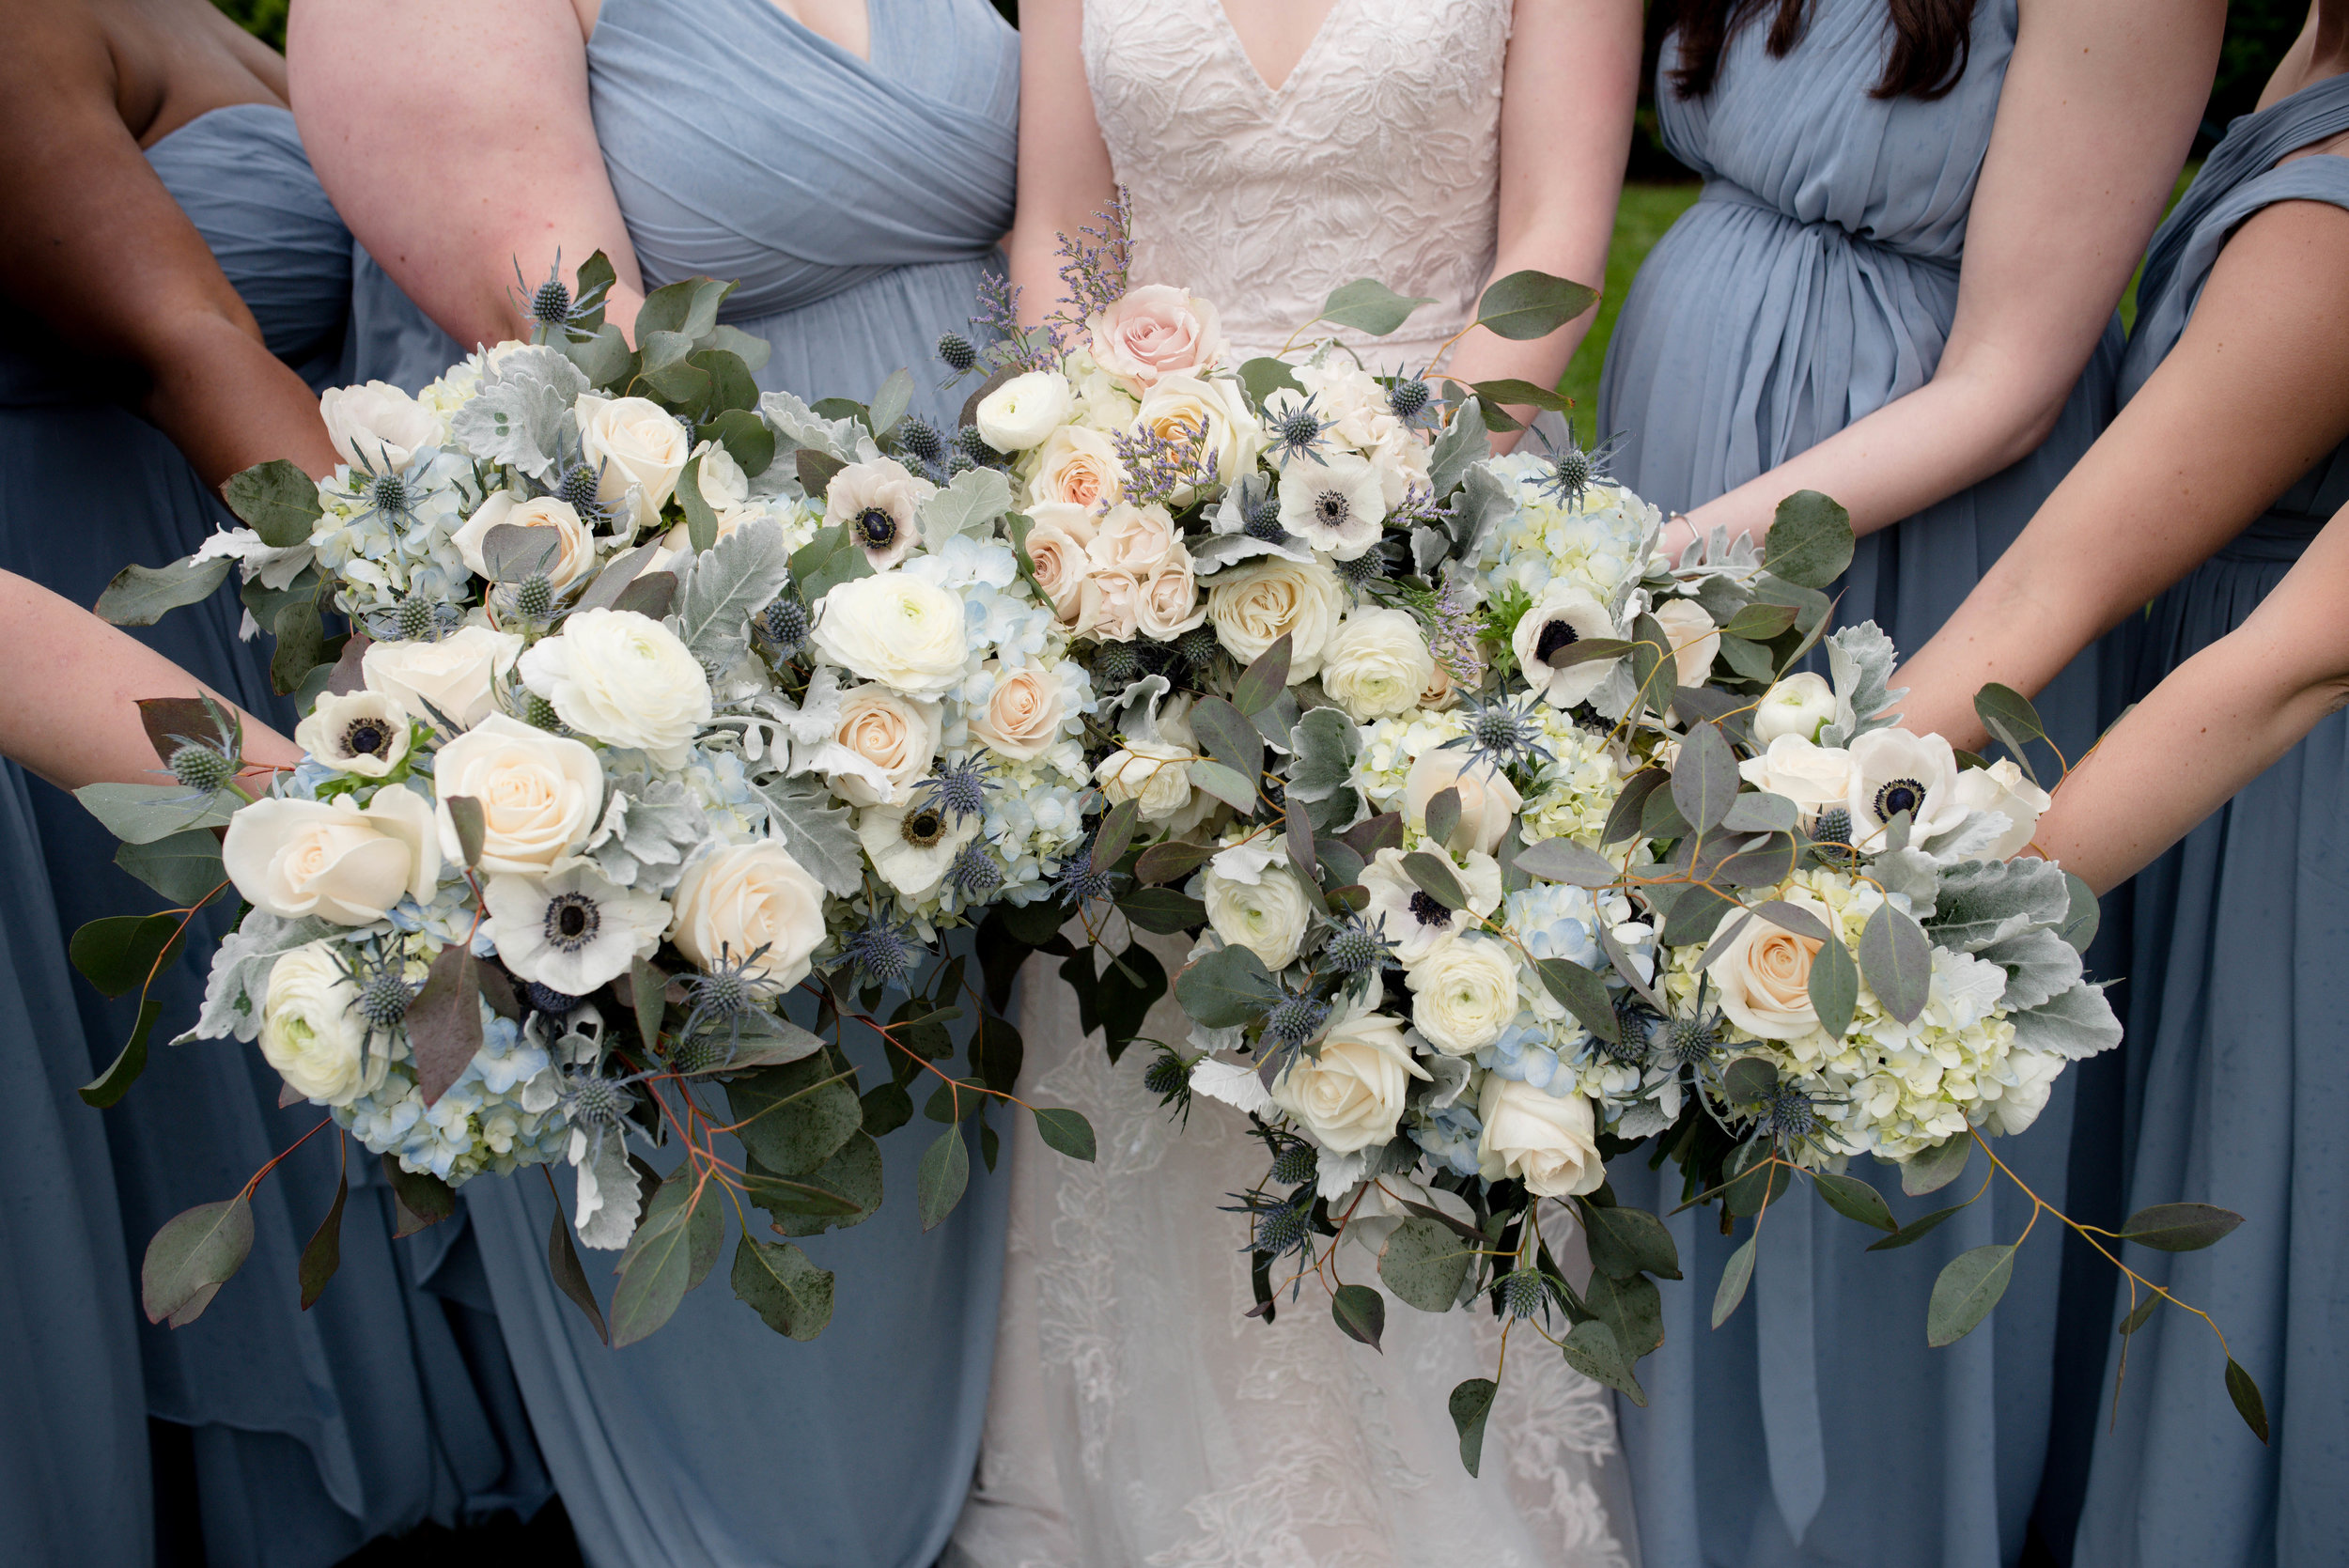 blue-ridge-wedding-ashley-nicole-photography-restoration-hall-crozetphotography-restorationhall-charlottesville-wedding_BPbridesmaids-2.jpg